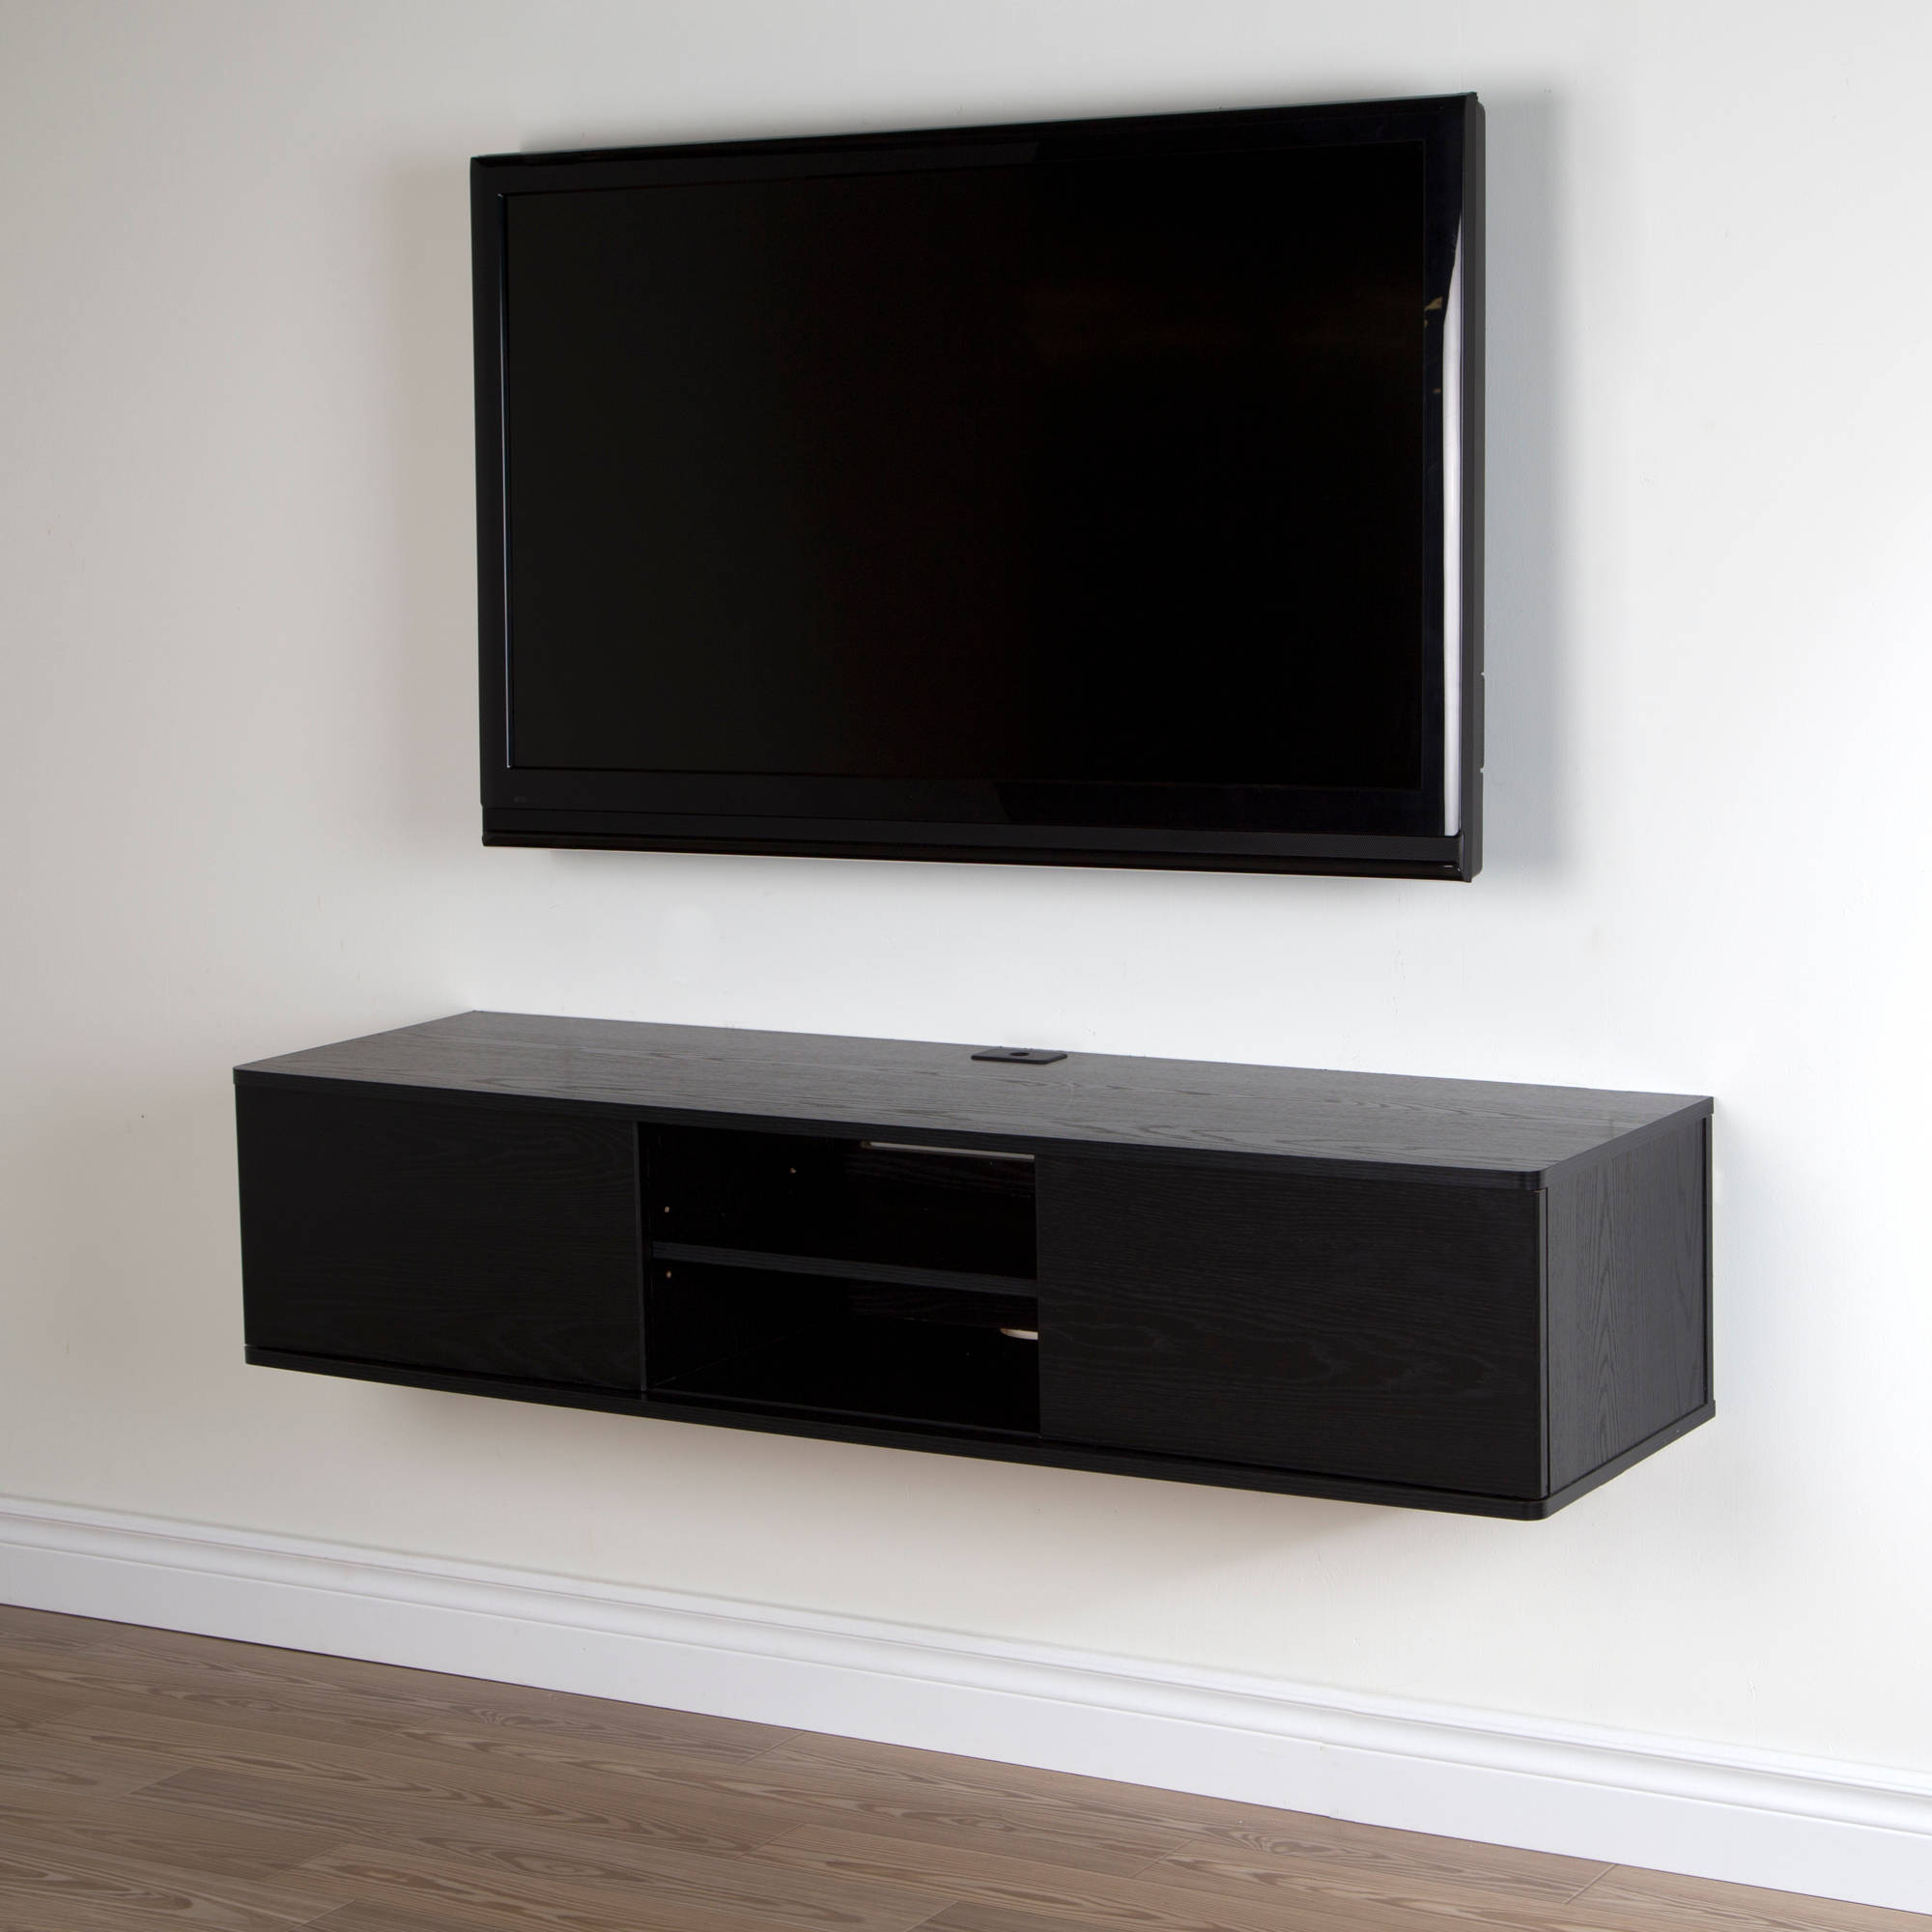 Wall mount tv console wall mounted floating tv stands woodwaves floating tv stand wall mount - Inspiration wall mounted tv cabinet ...